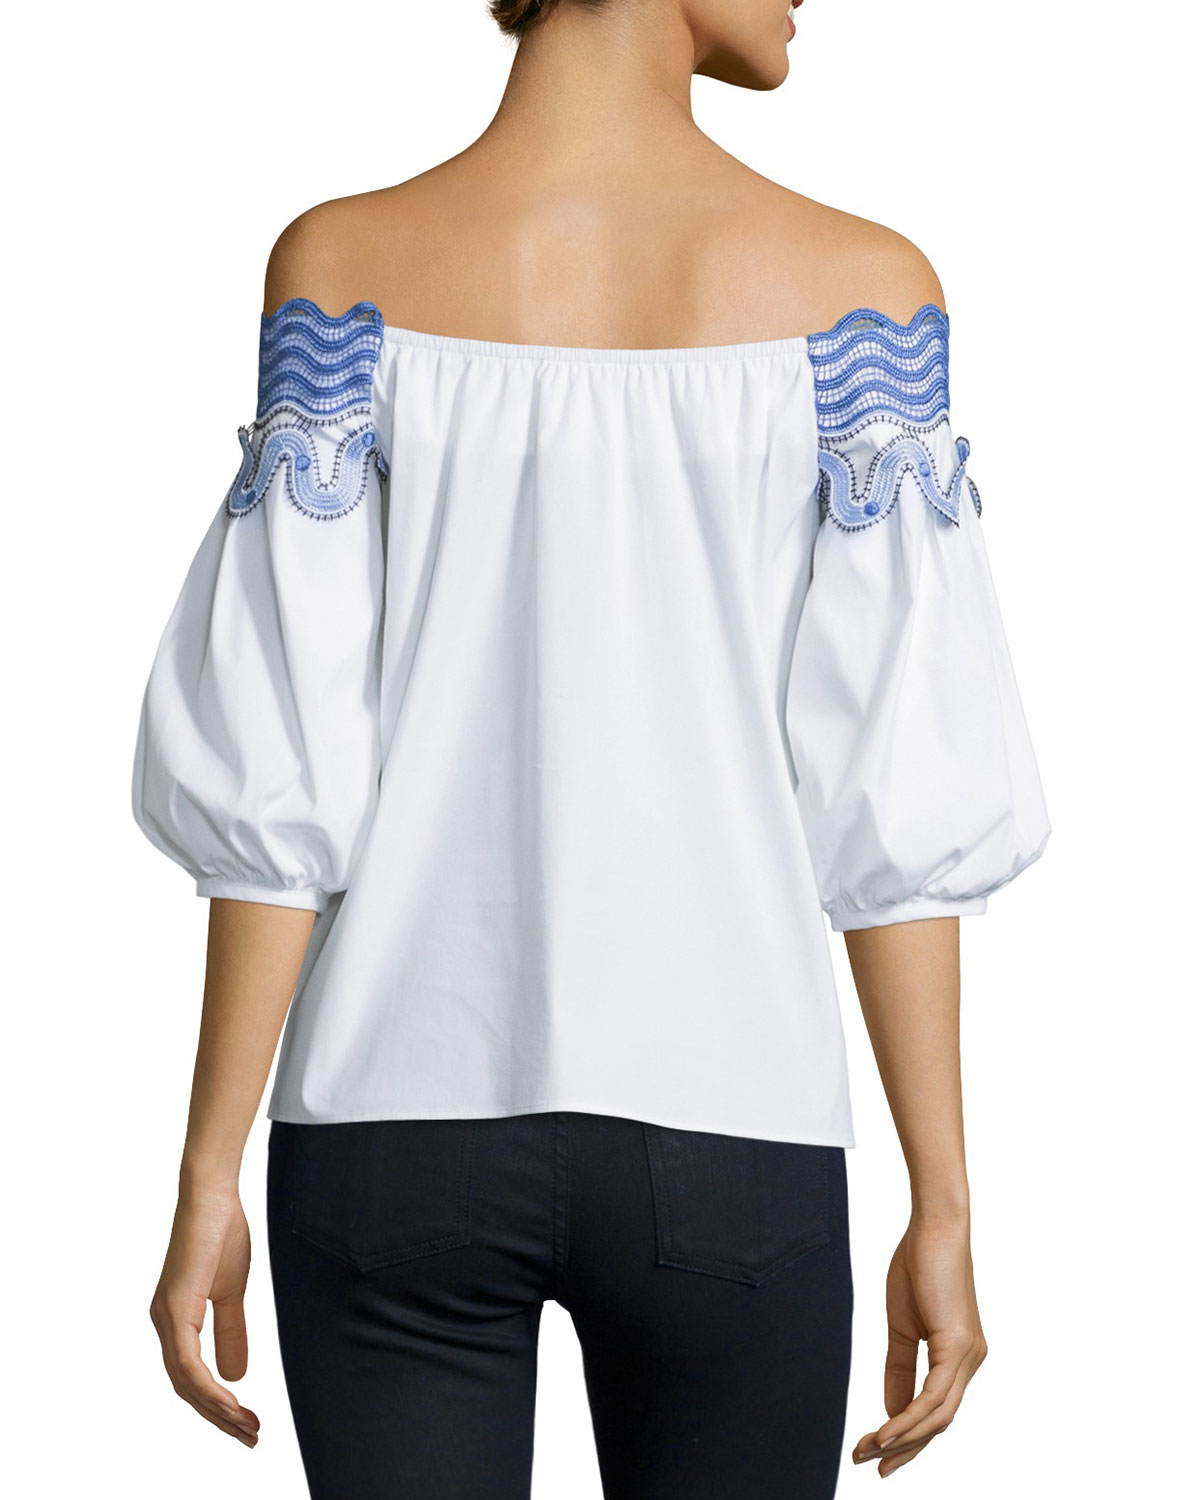 8c3b0f15401c2f Lyst - Peter Pilotto Embroidered Off-the-shoulder Top in White